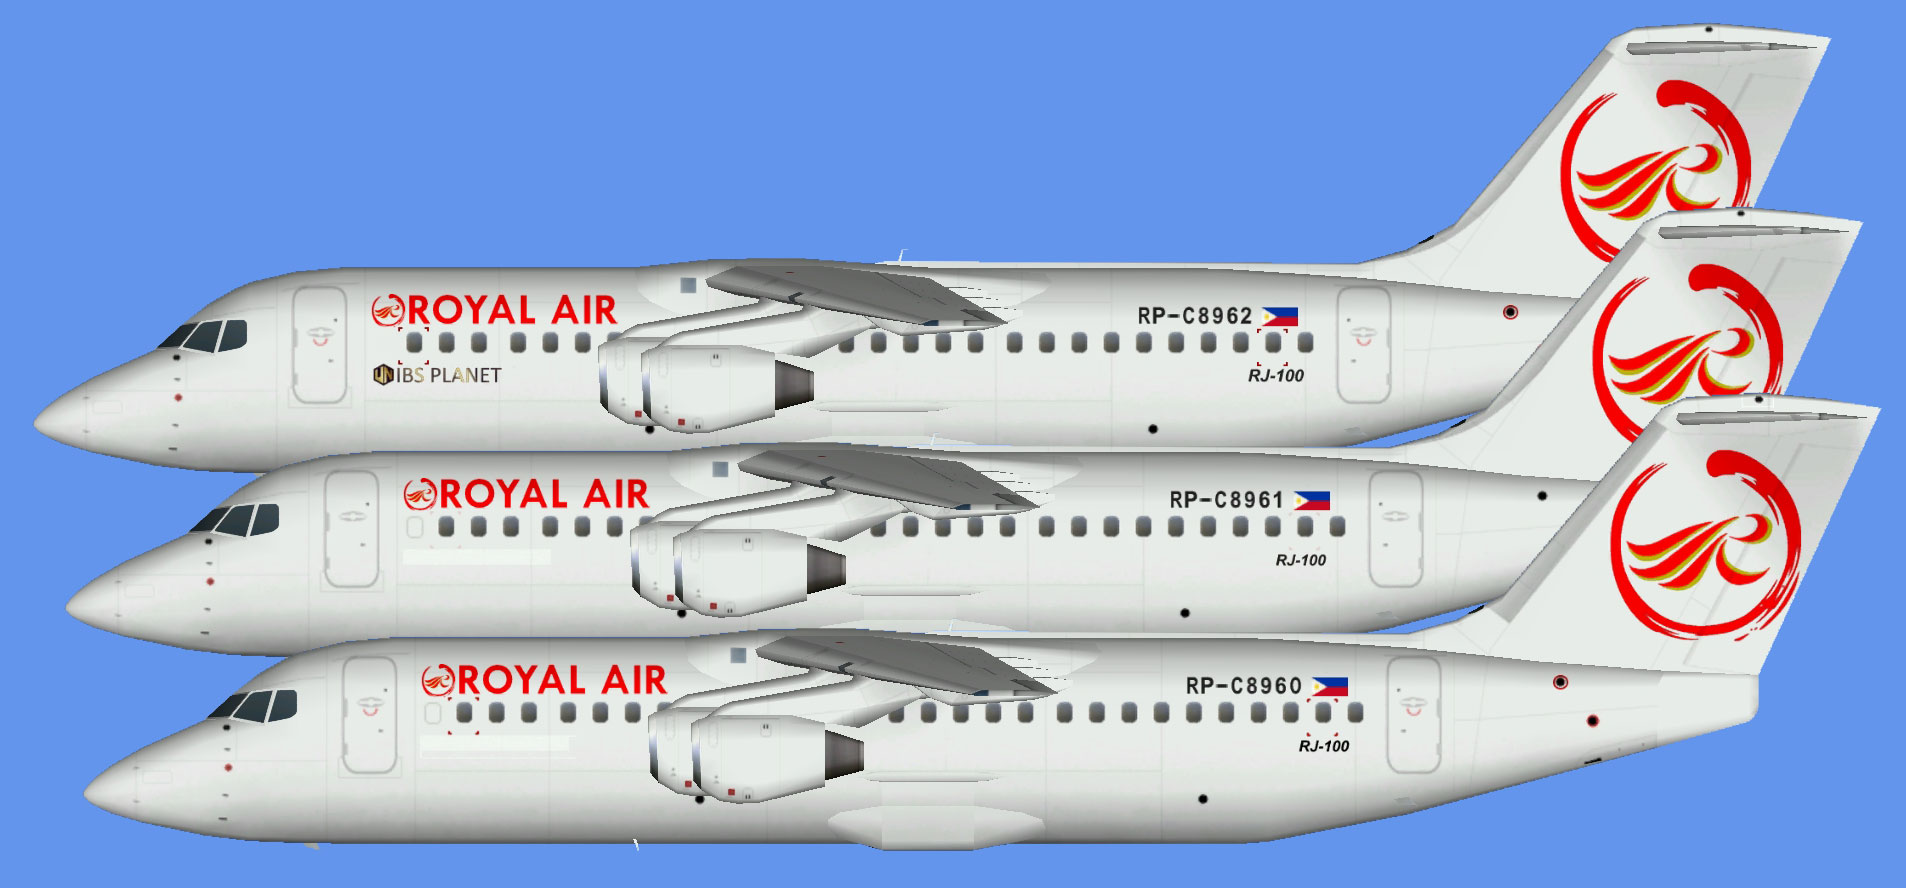 Royal Air Philippines RJ-100